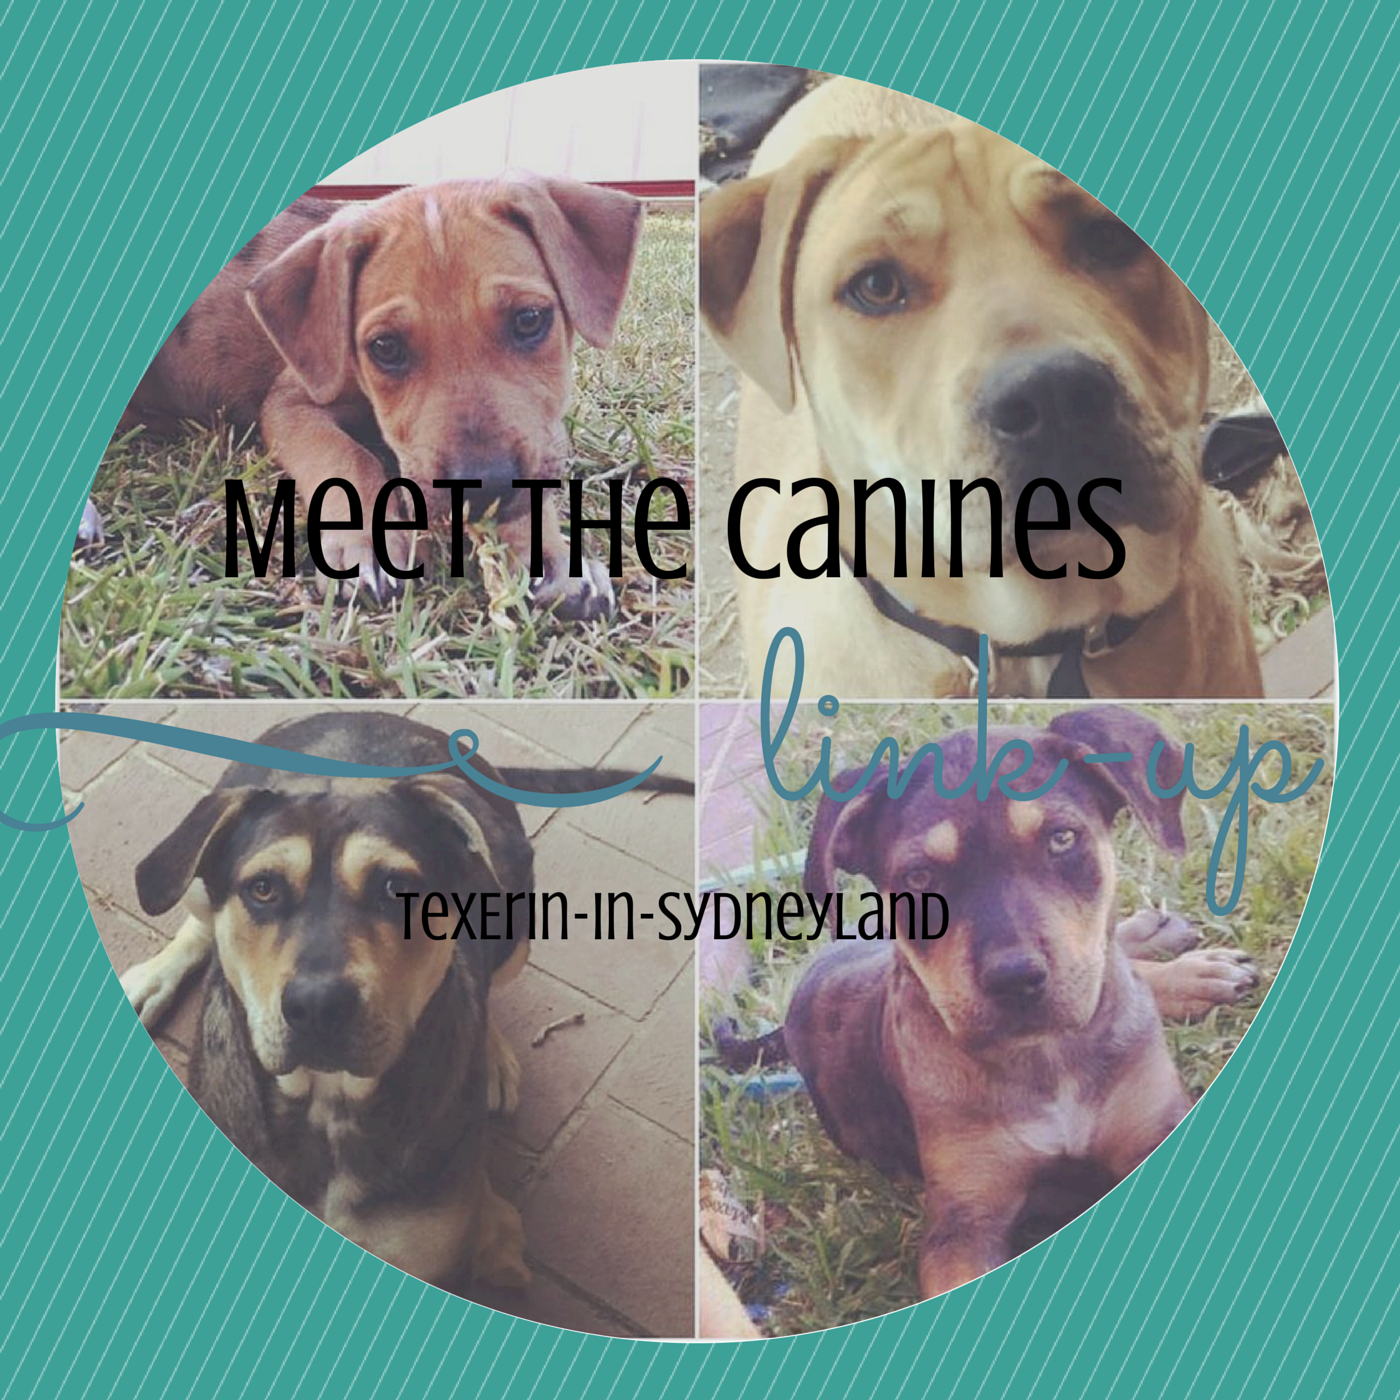 http://texerin-in-sydneyland.blogspot.com.au/2015/04/meet-canines-link-up.html